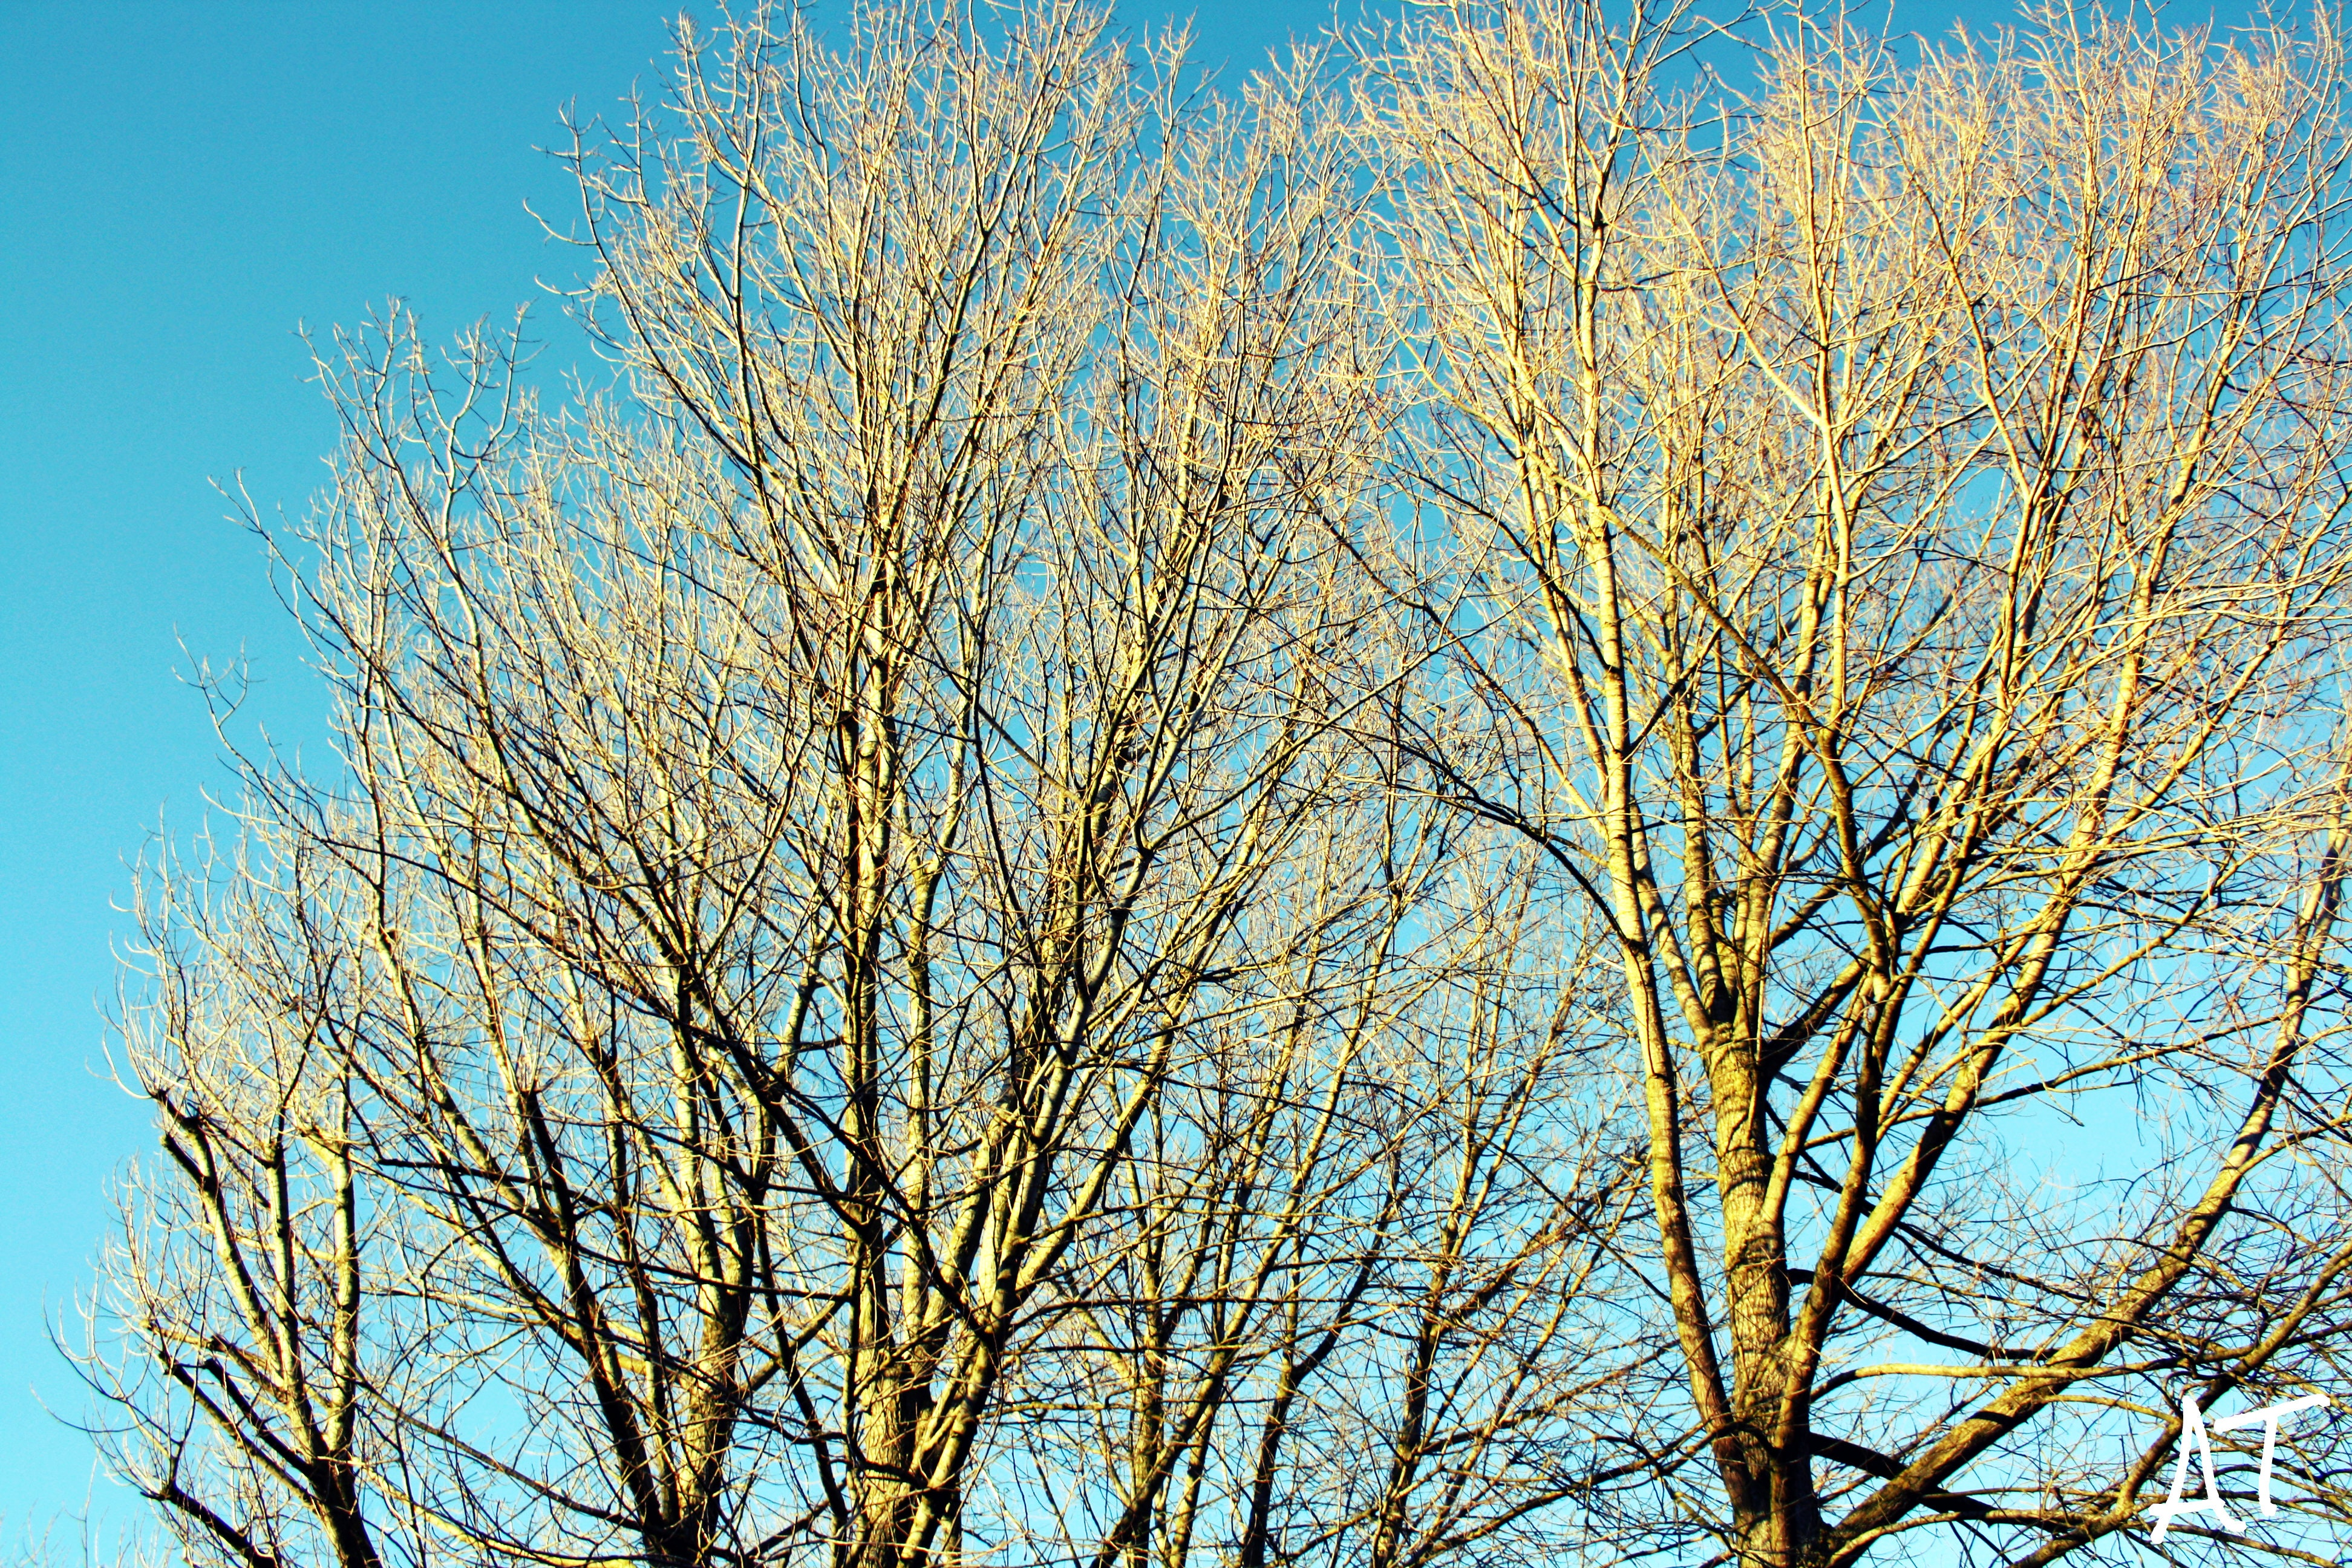 Leafless Tree Under Blue Sky at Daytime, Bark, Branches, Bright, Daylight, HQ Photo